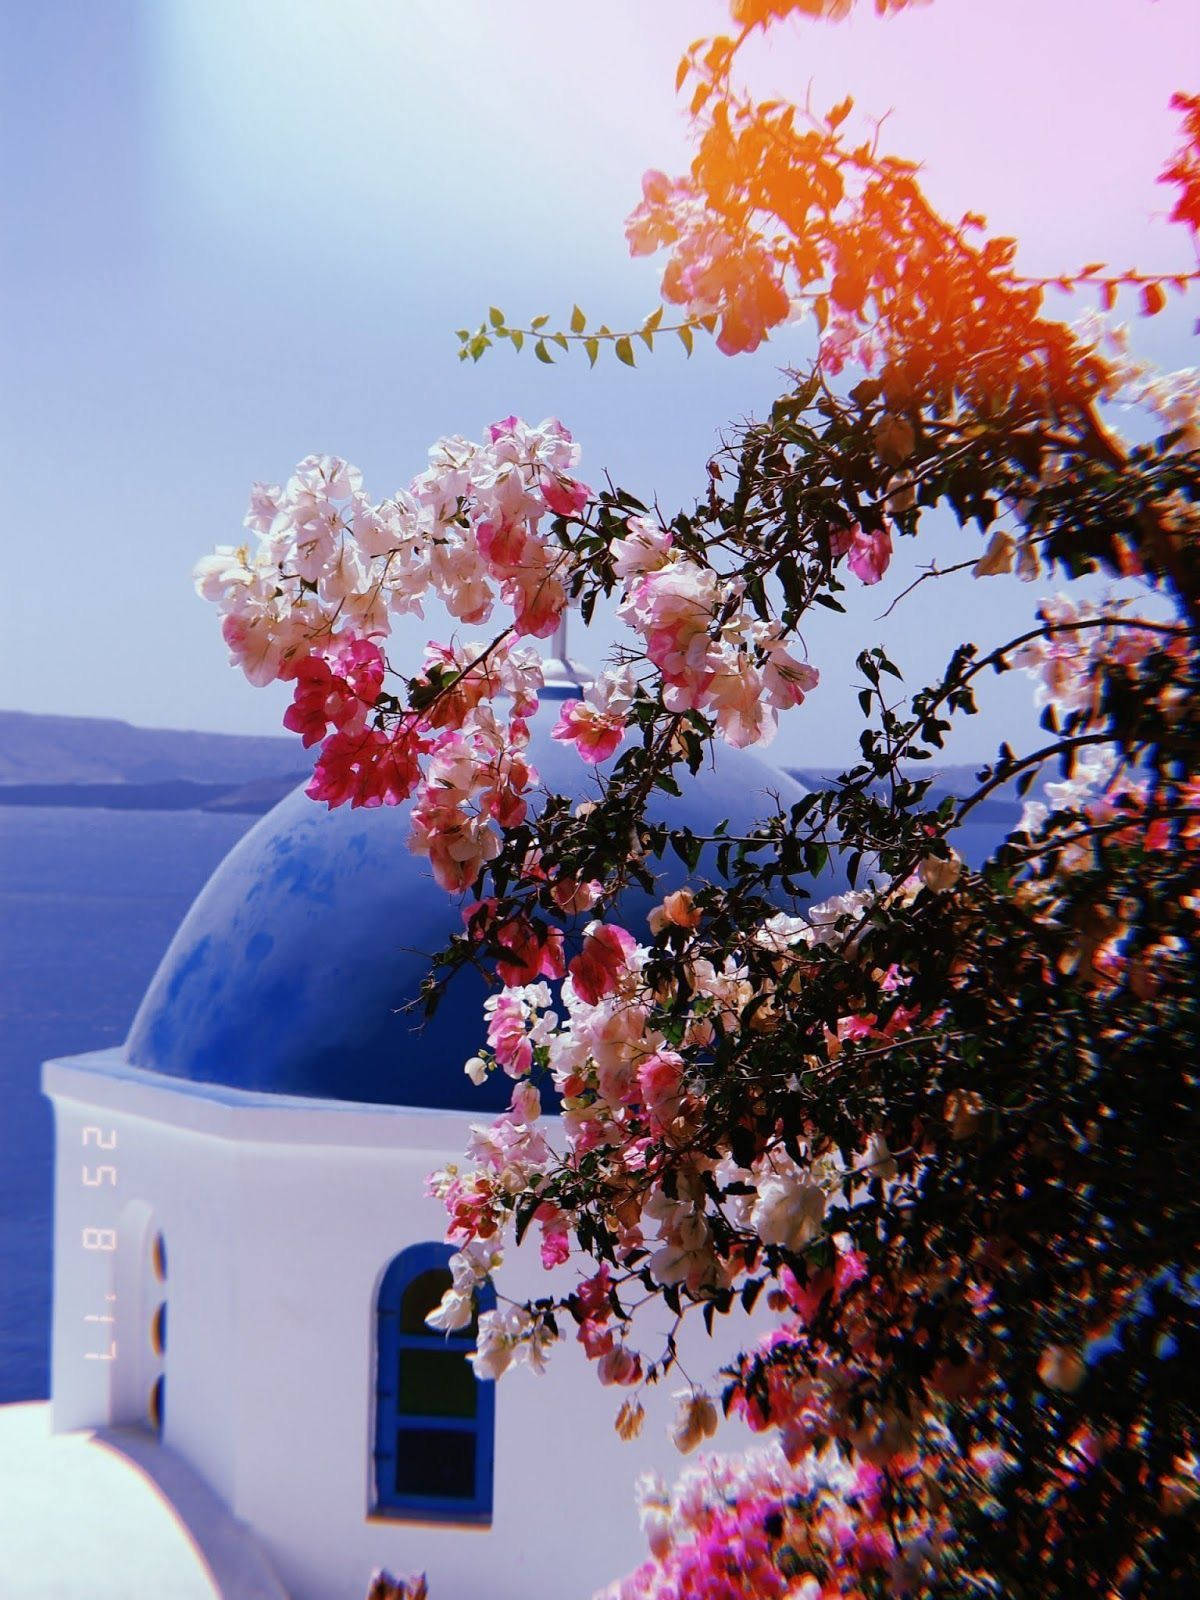 Free Download Pin By Corrine On Huji Cam Inspire Aesthetic Pictures Quotes 1200x1600 For Your Desktop Mobile Tablet Explore 42 Santorini Wallpapers Tumblr Santorini Wallpapers Tumblr Santorini Wallpaper Santorini Wallpaper Murals